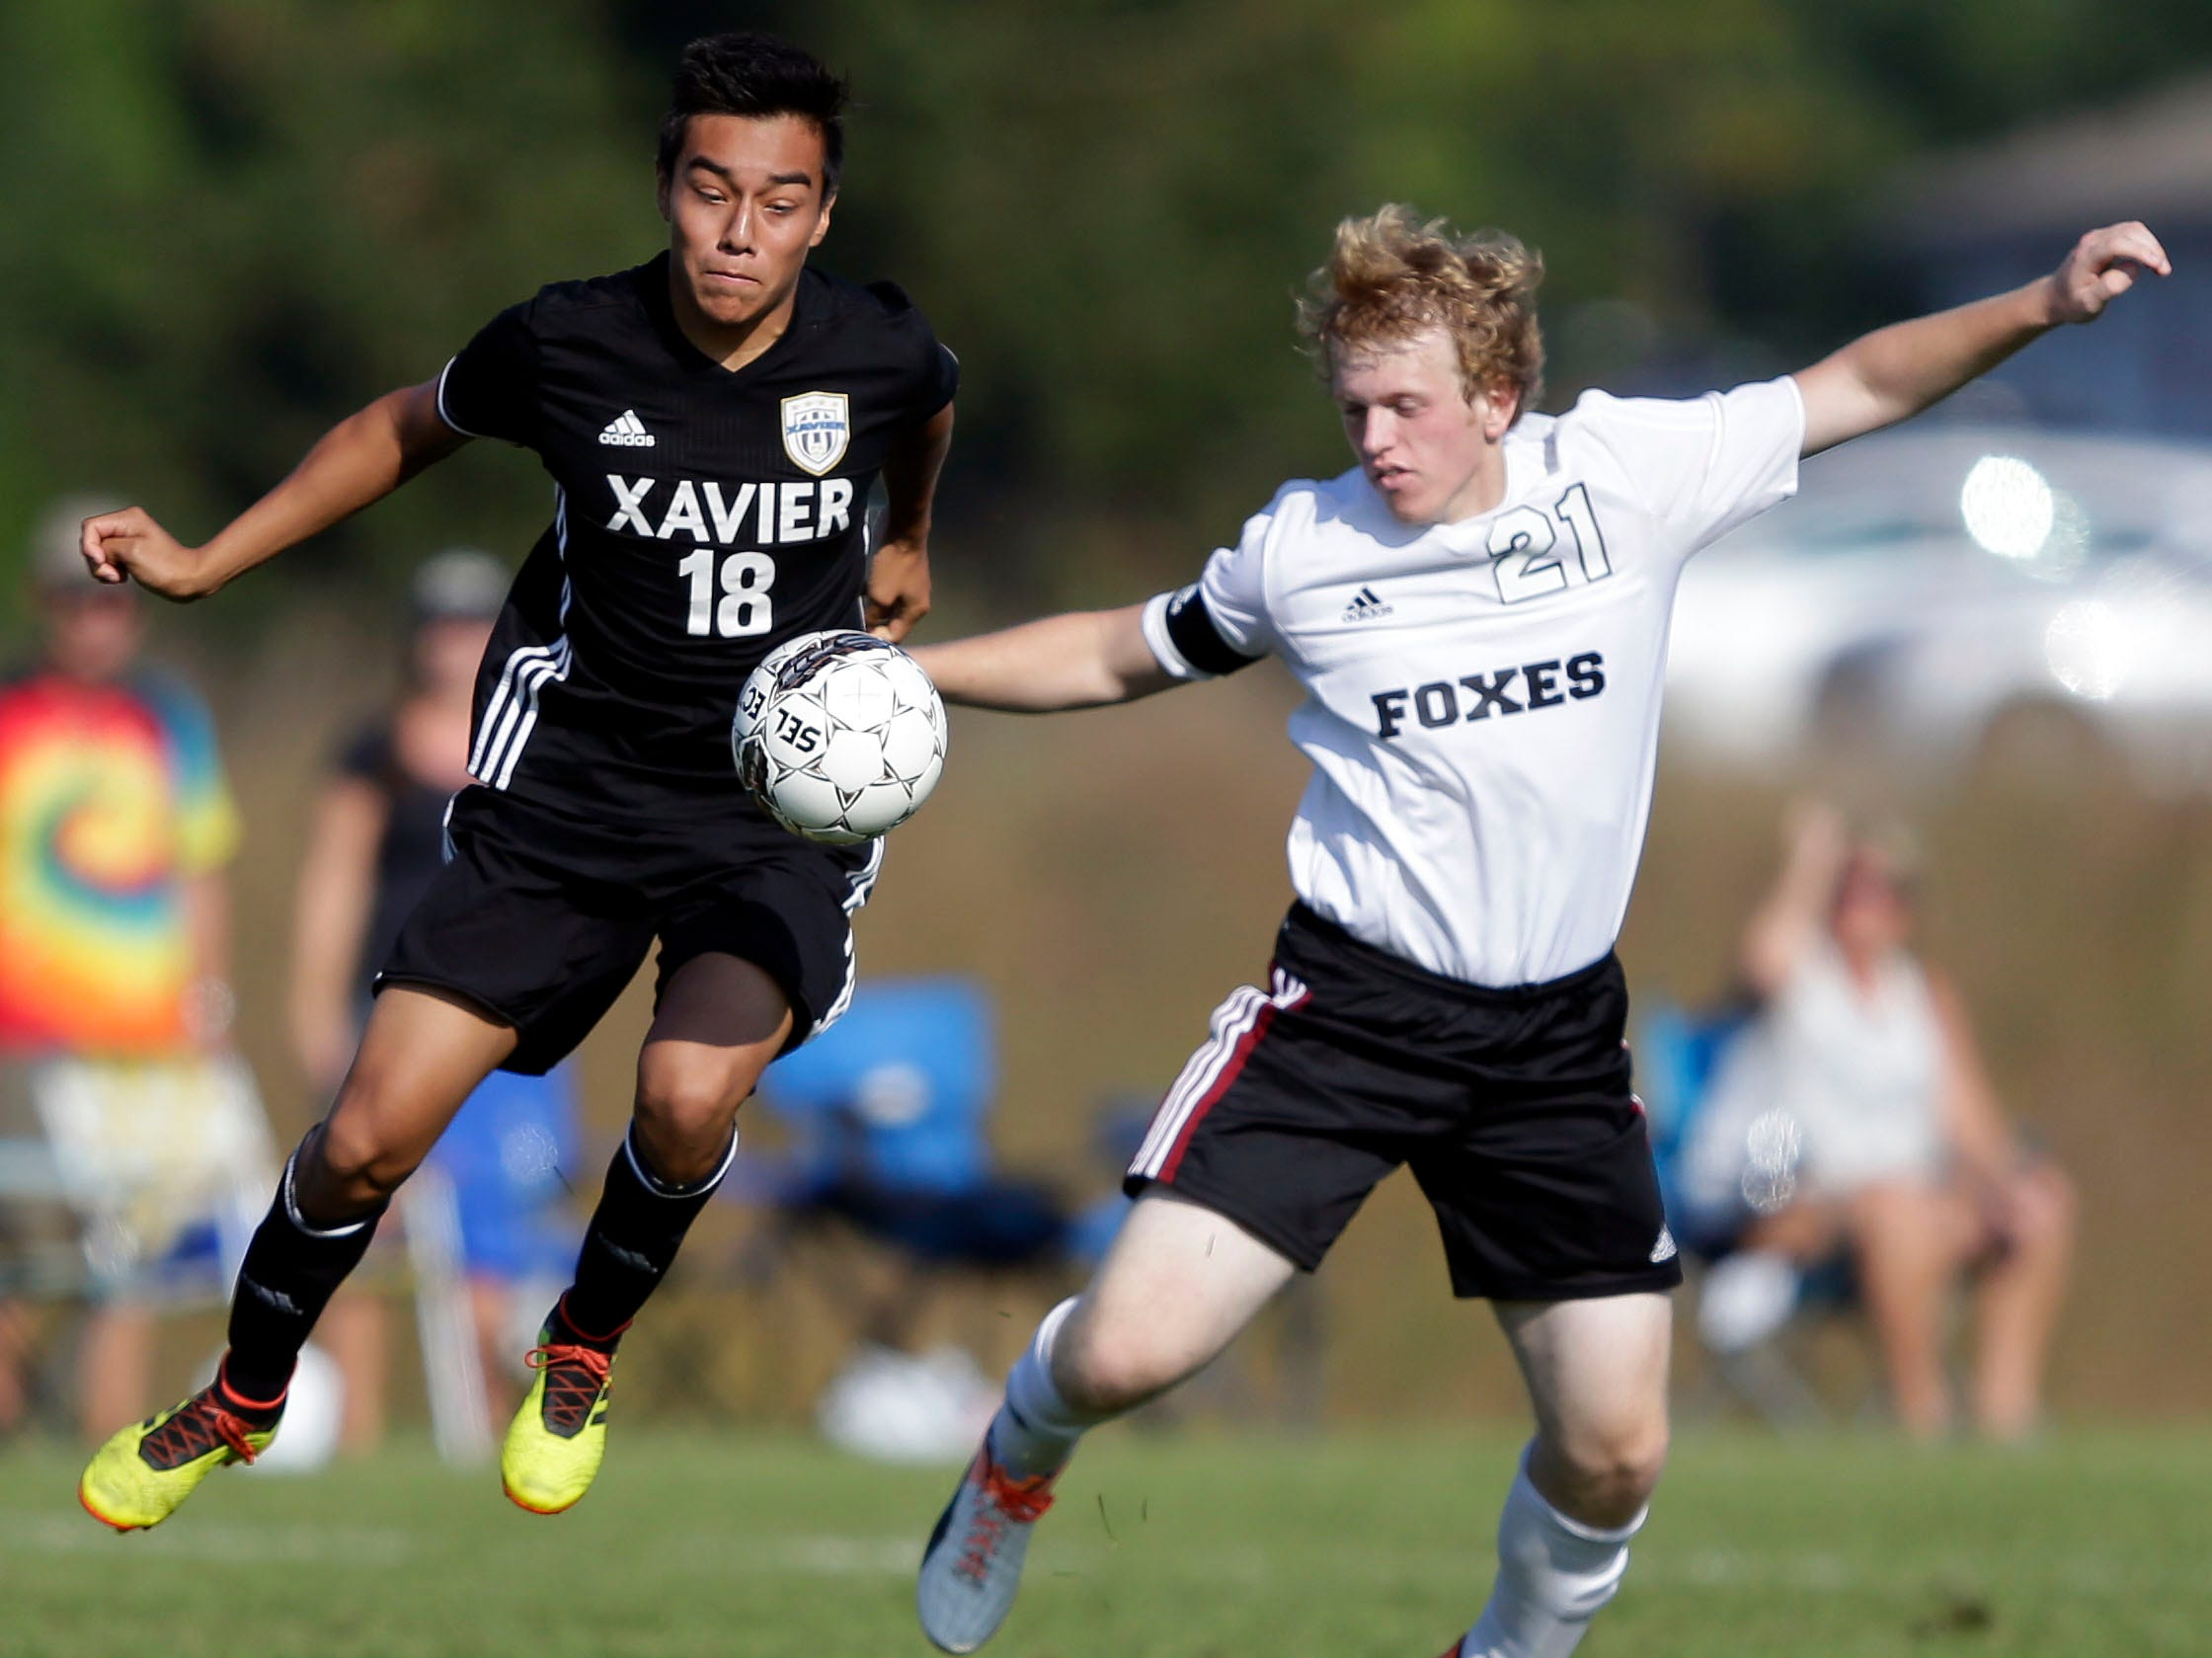 Adrian Chenci of Xavier and Ryan Blobe of Fox Valley Lutheran work for control in the Xavier boys soccer tournament Saturday, September 15, 2018, at the Scheels USA Sports Complex in Appleton, Wis.